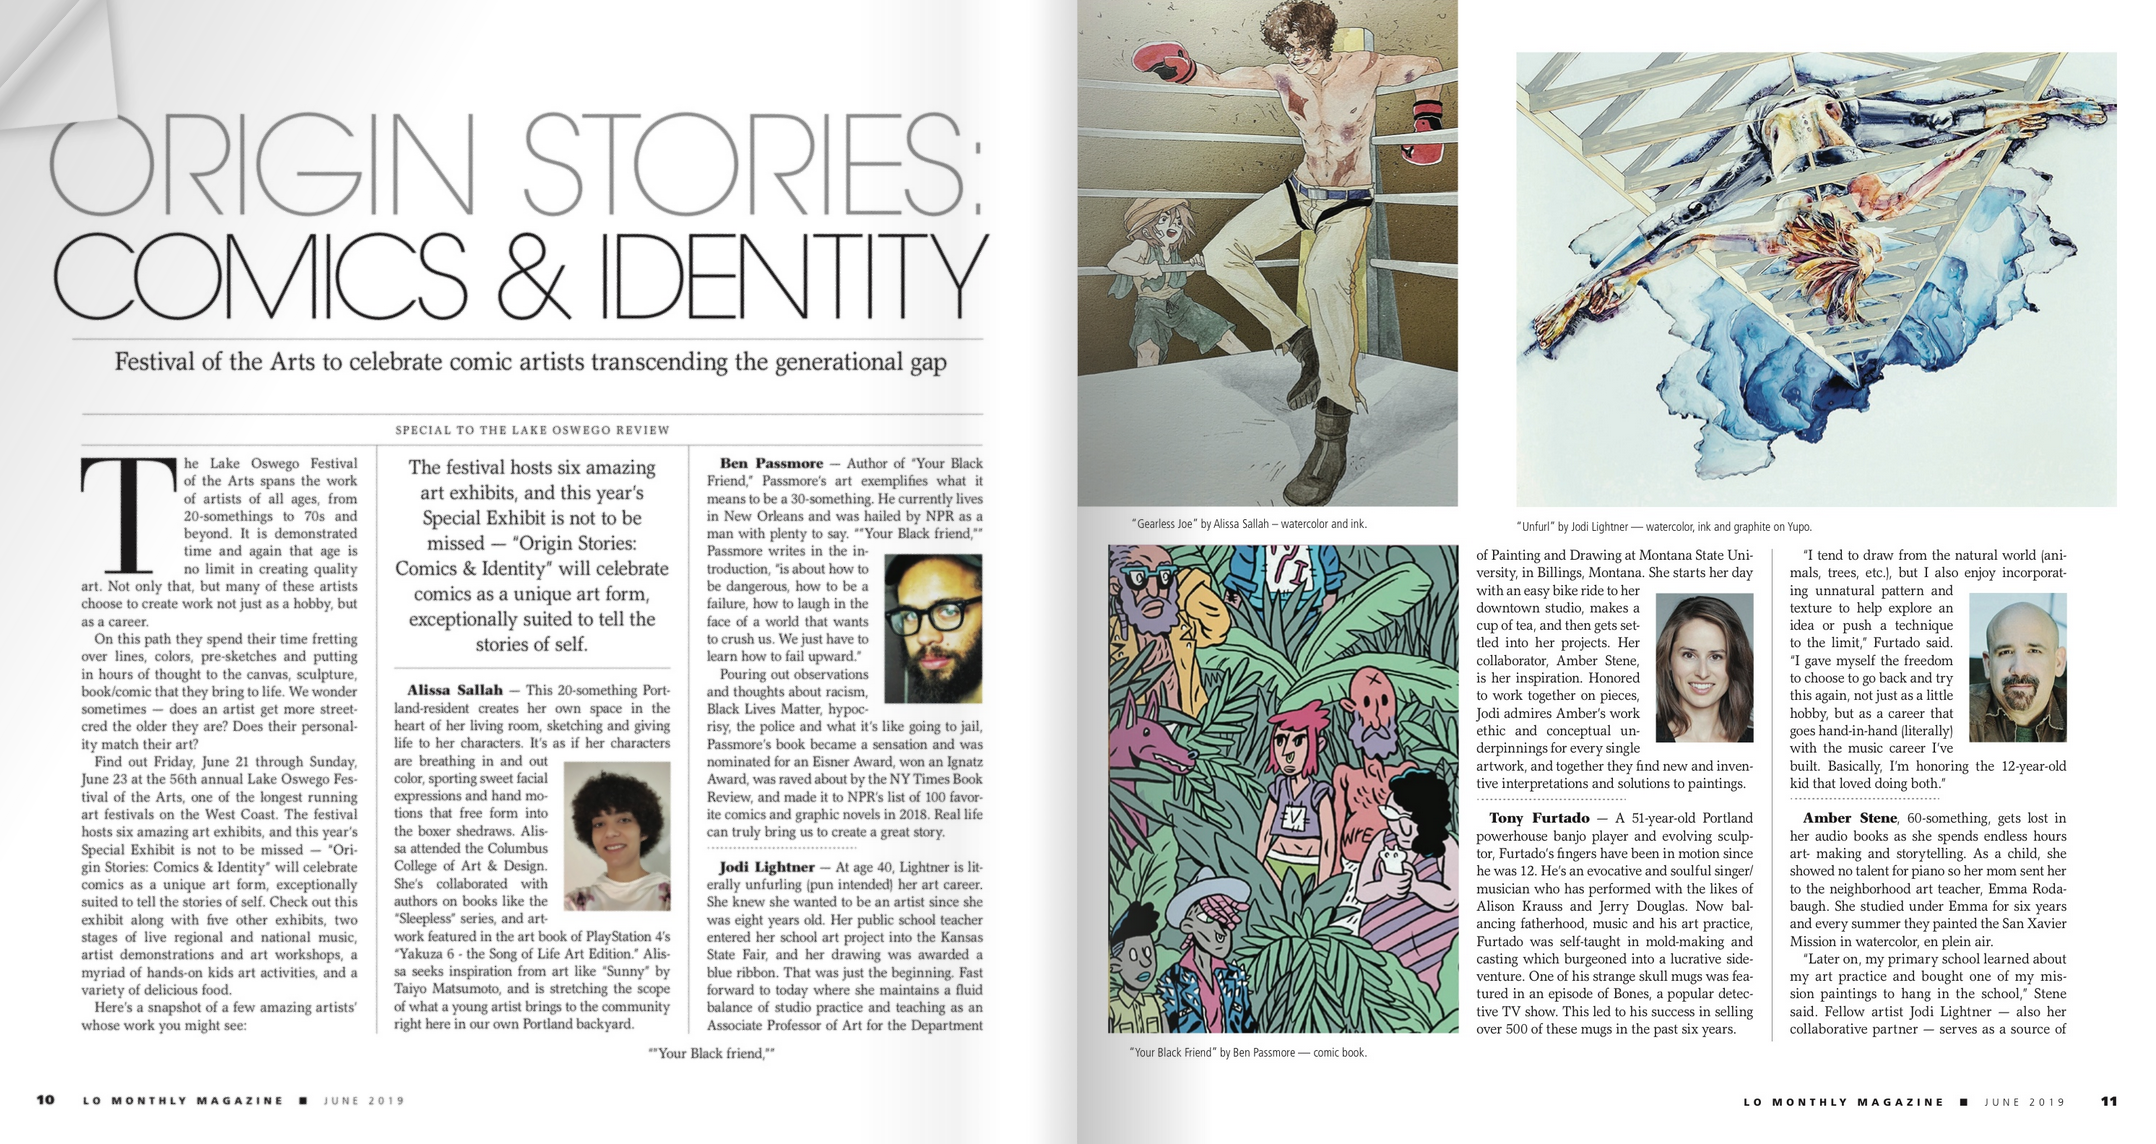 Excited to be featured in the LO Monthly Magazine with Amber for our collaborative projects!